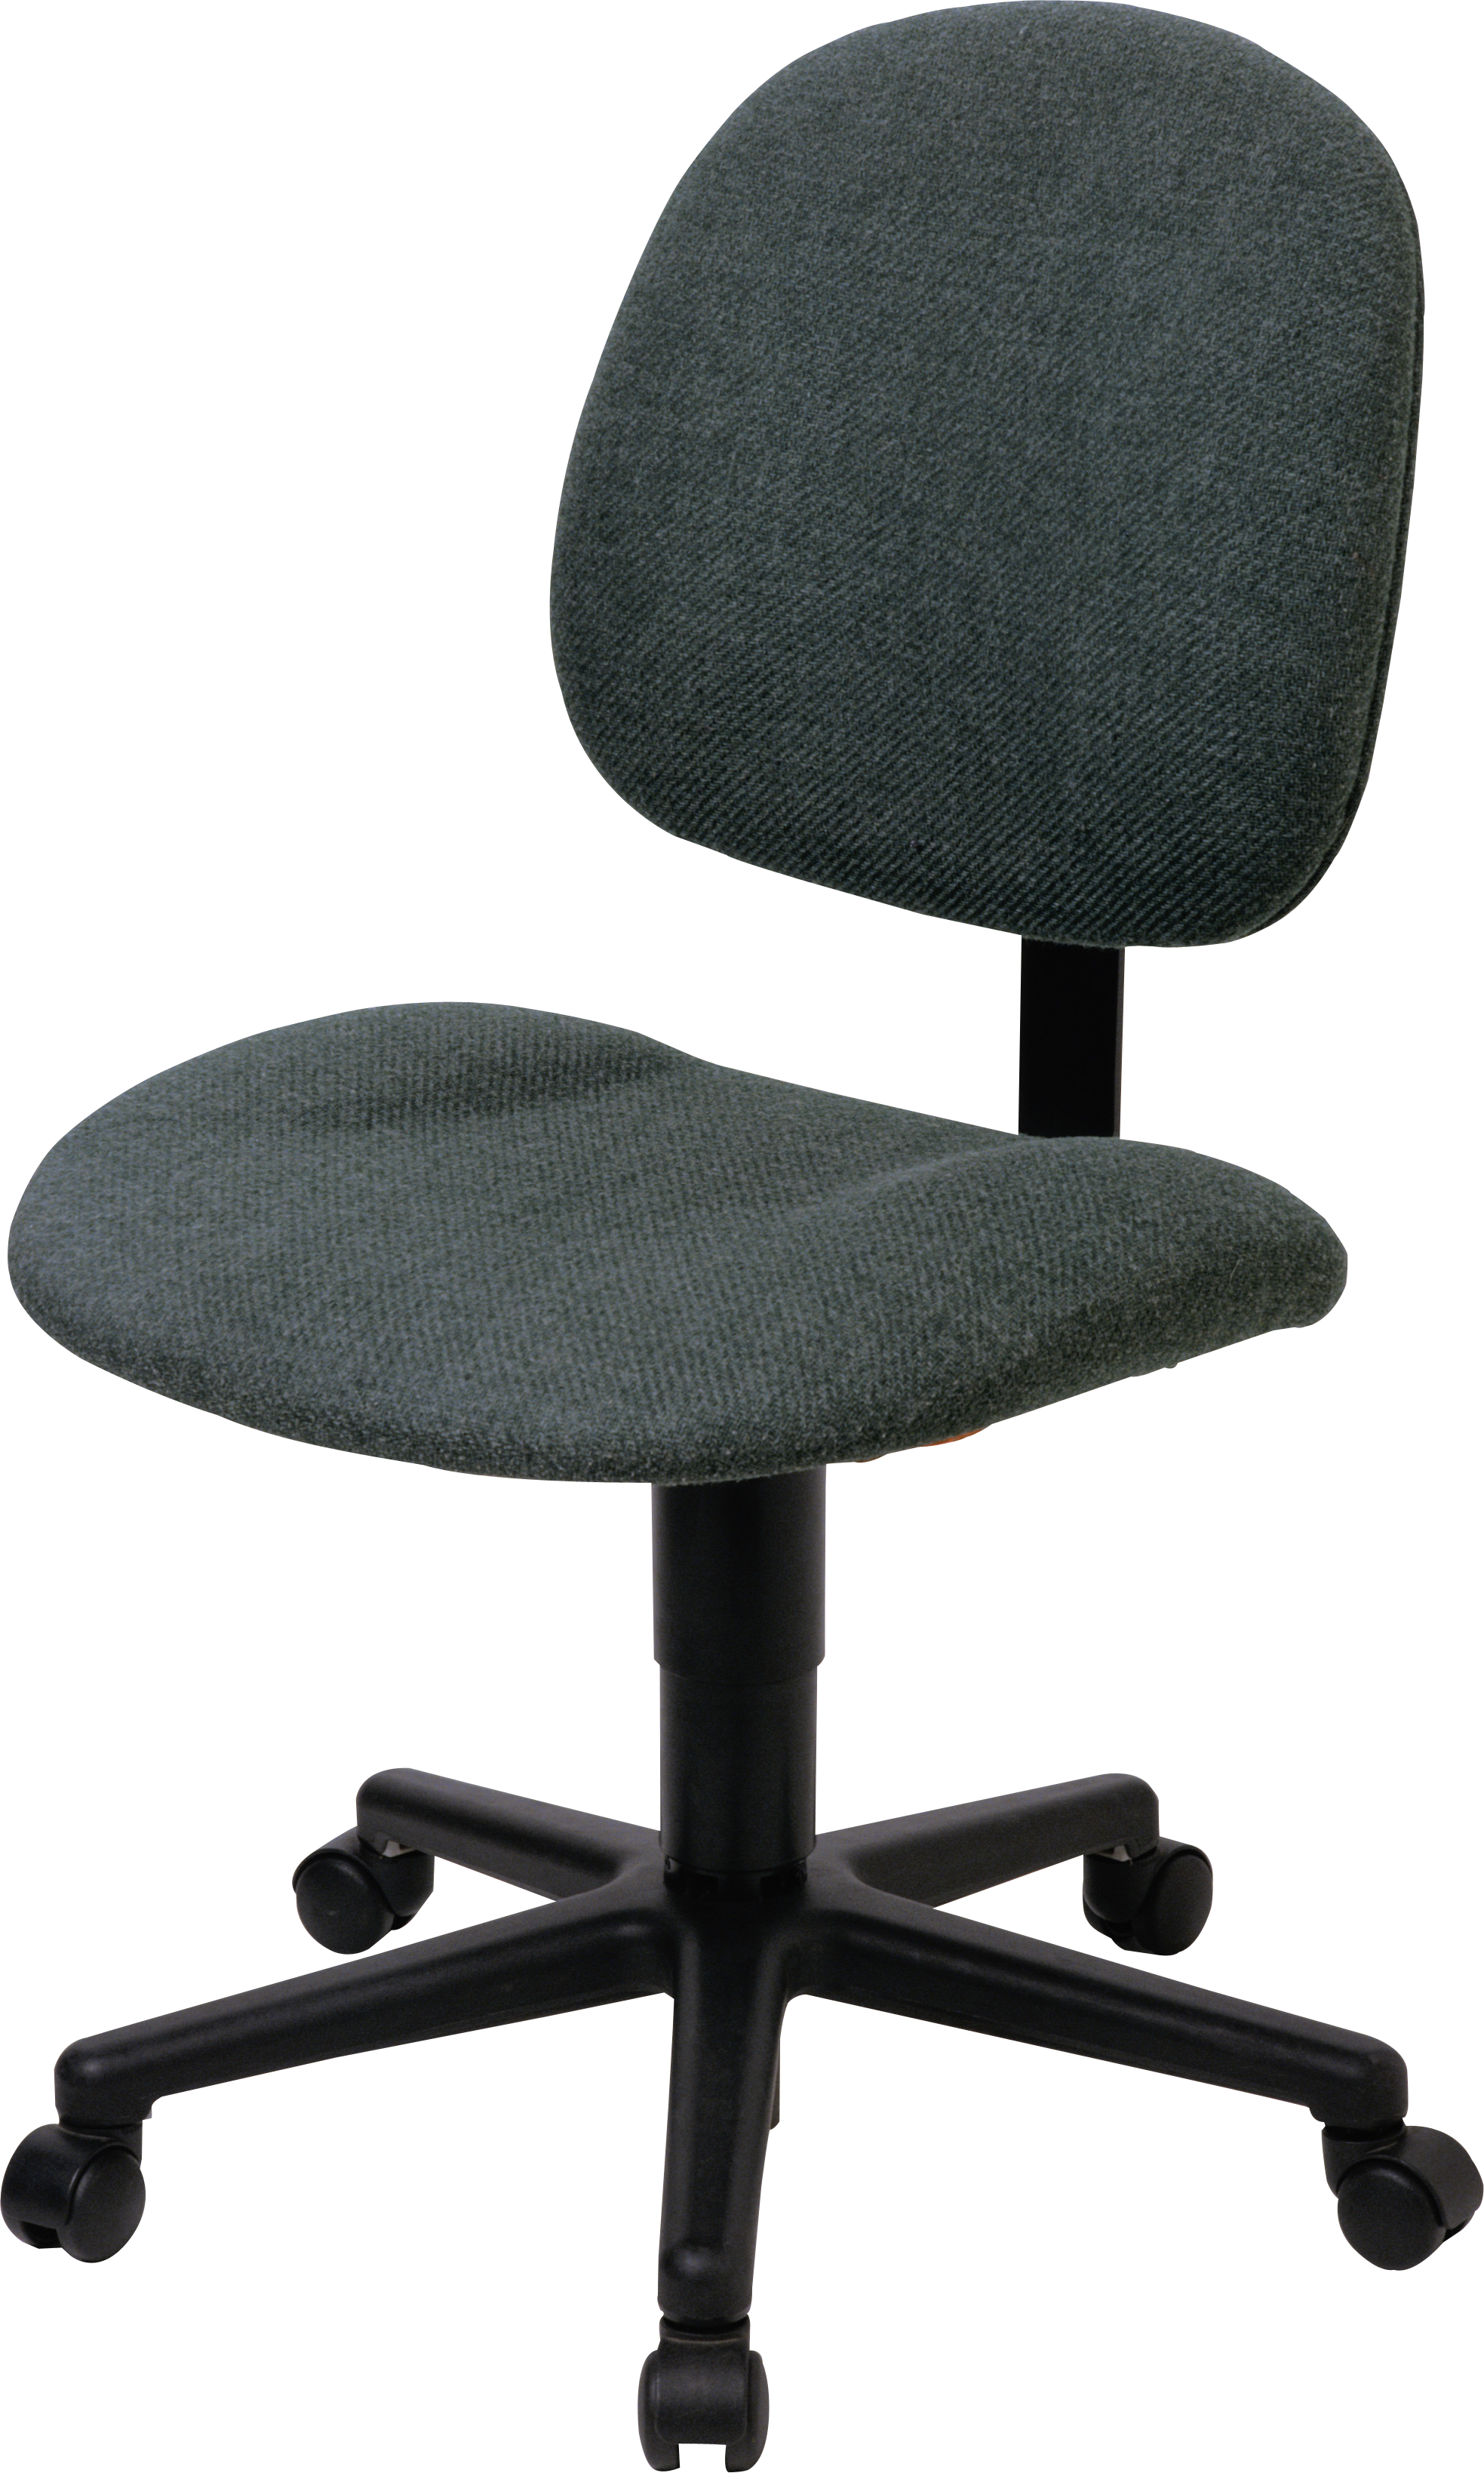 Clipart chair park. Png images free download